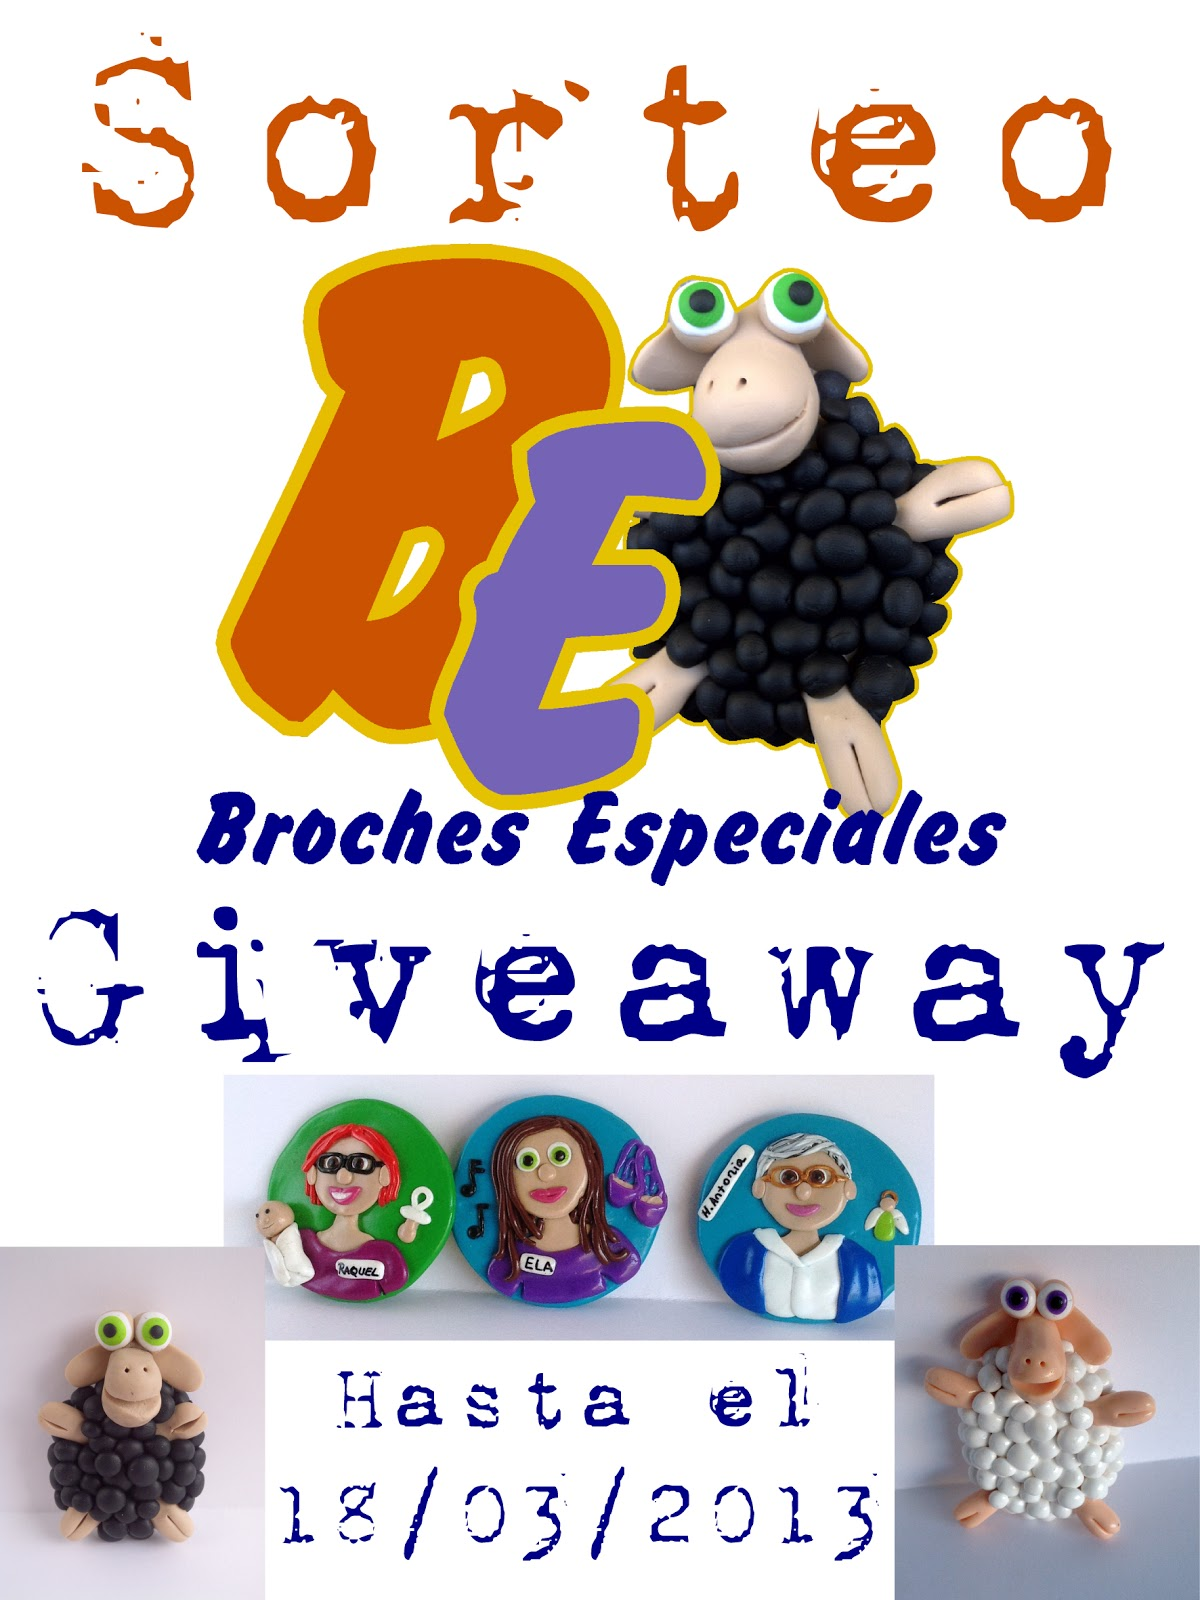 Be Broches Especiales